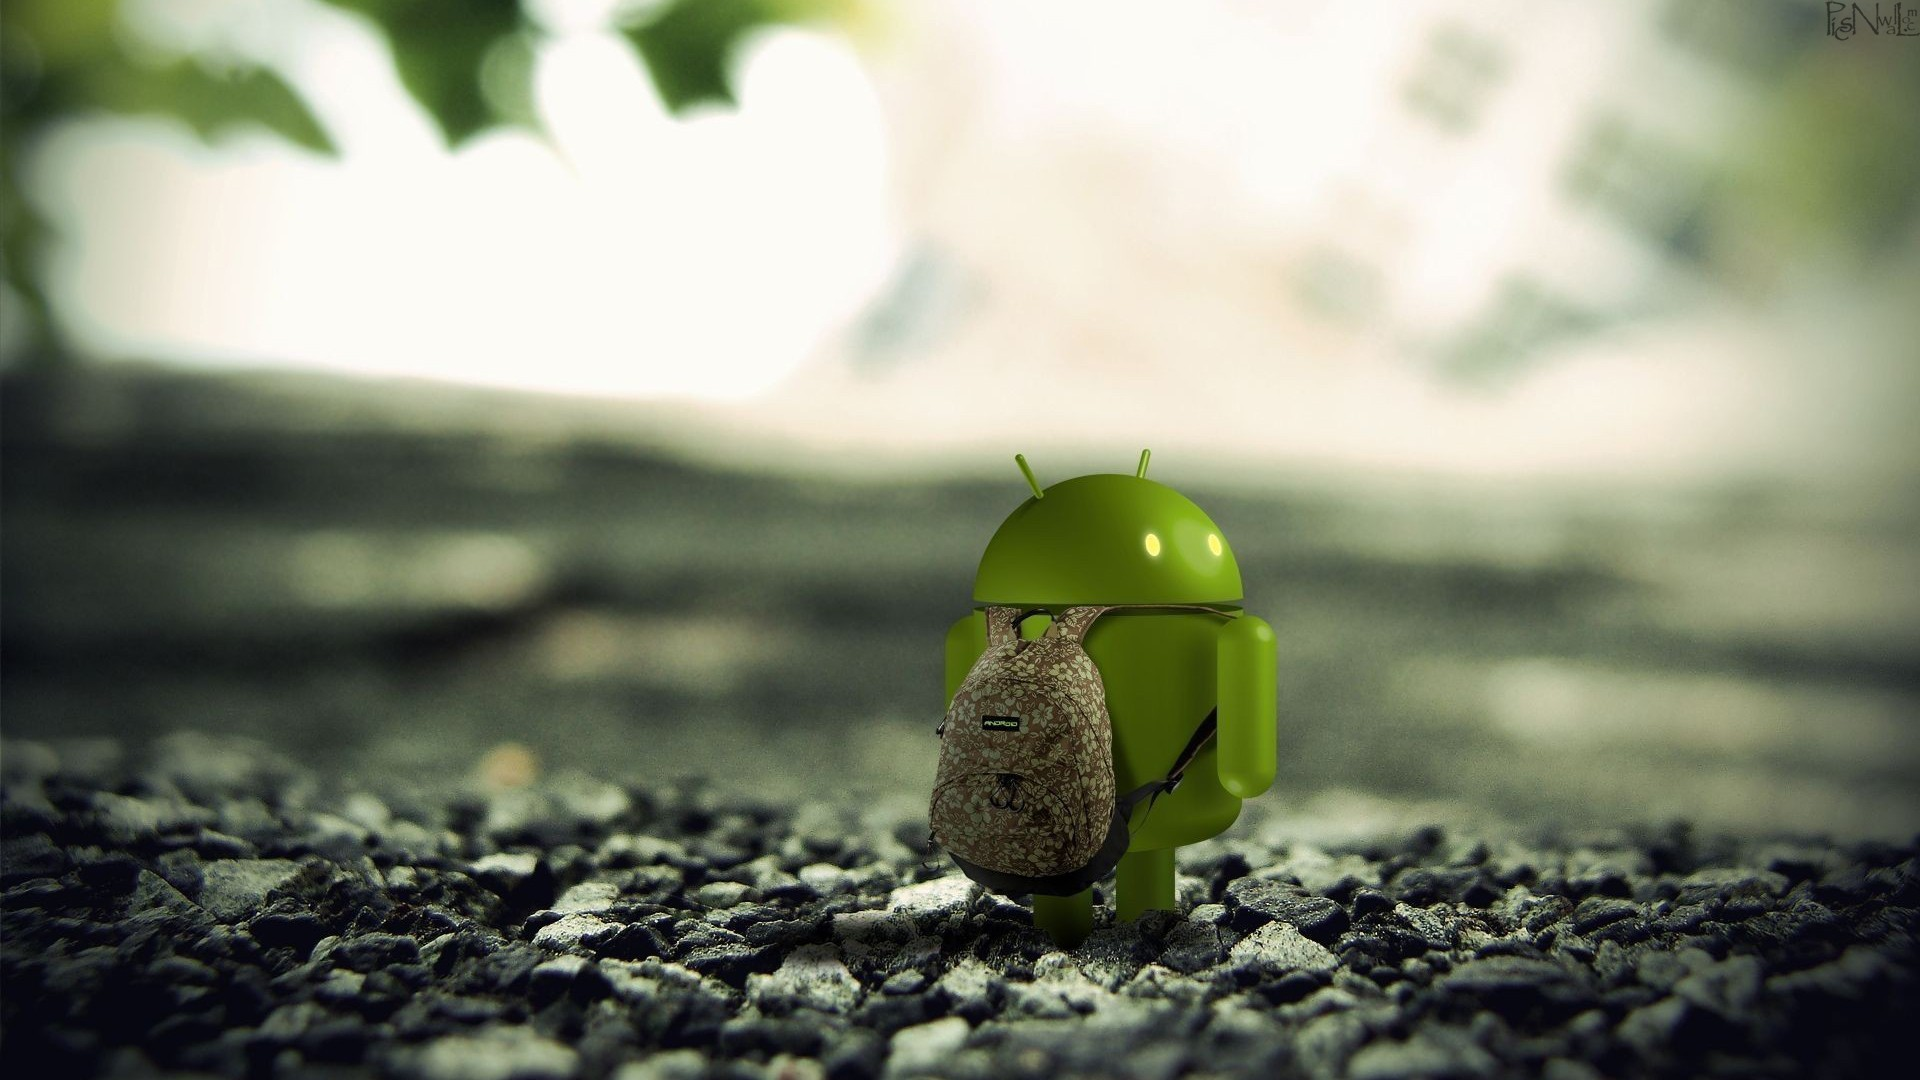 Collection of Android Hd Wallpapers For Mobile on HDWallpapers